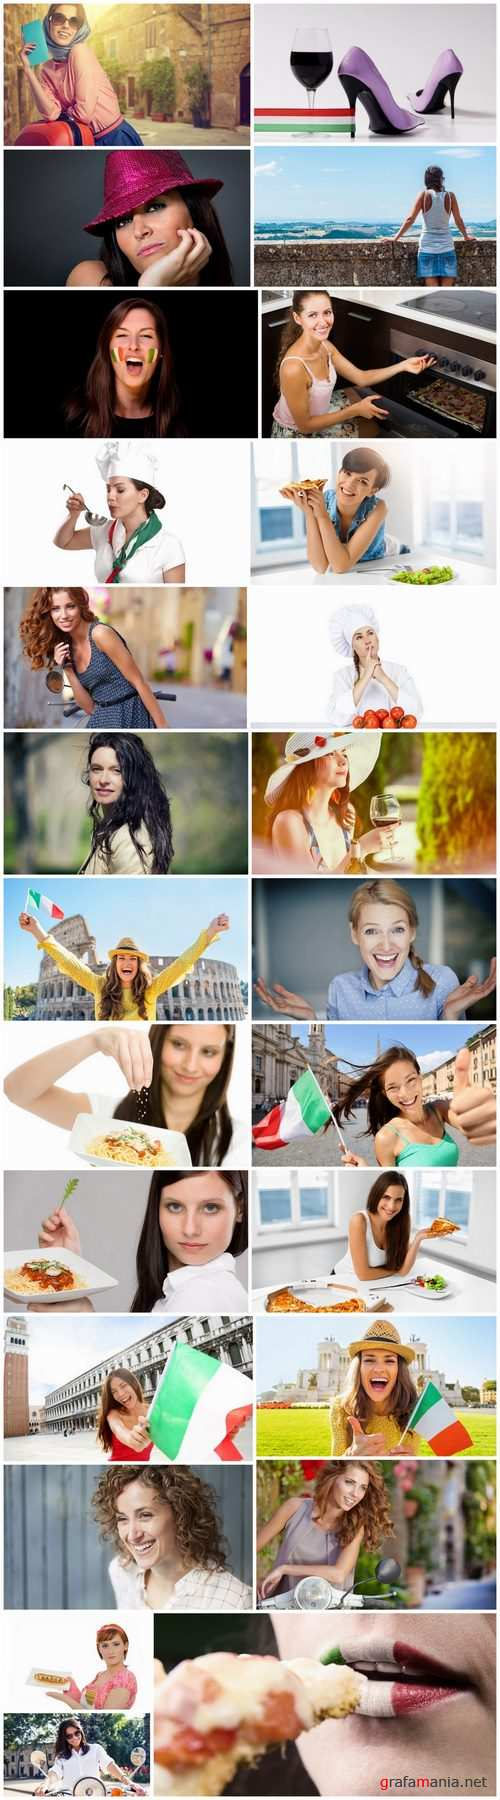 Italian girl Italian cuisine food meal national treasure 25 HQ Jpeg